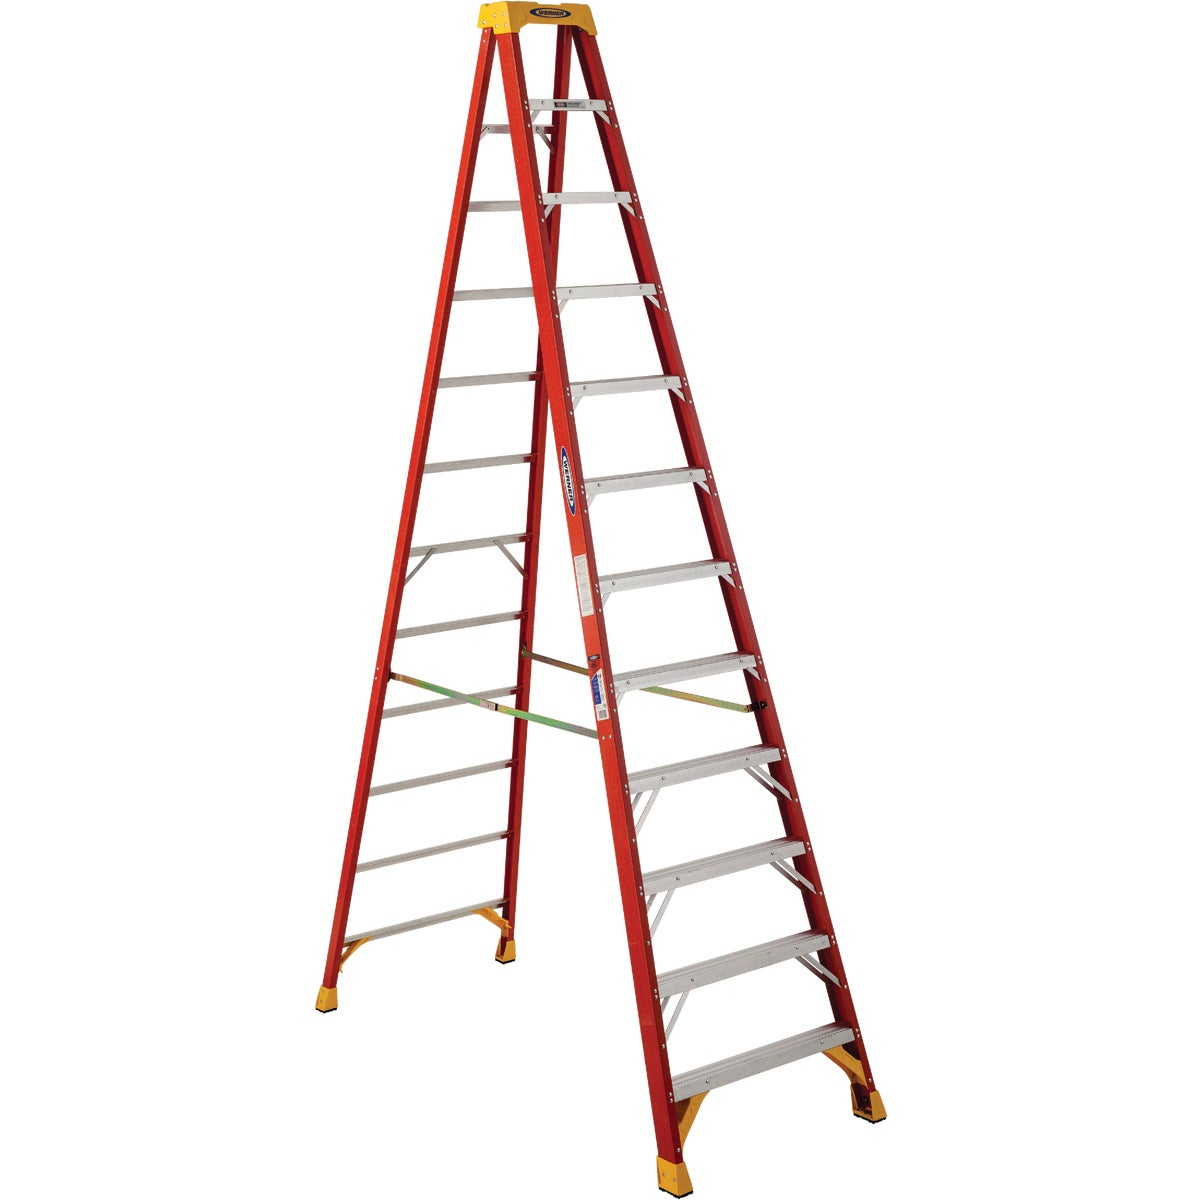 T-1A 12' FBGL STEPLADDER - 6212 by Werner Ladder